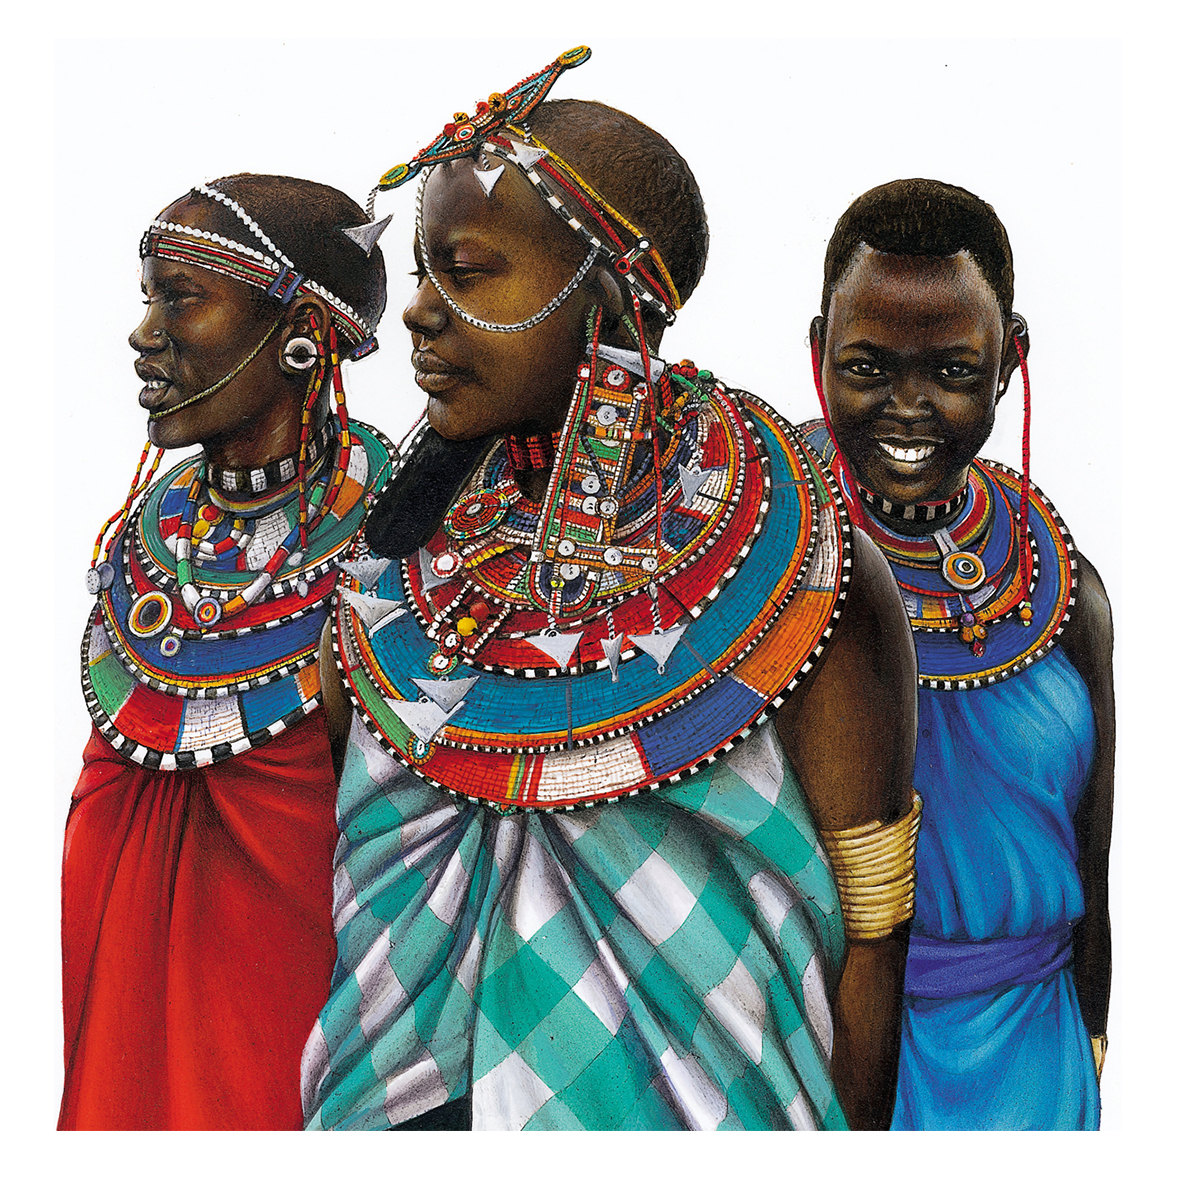 girls from Africa